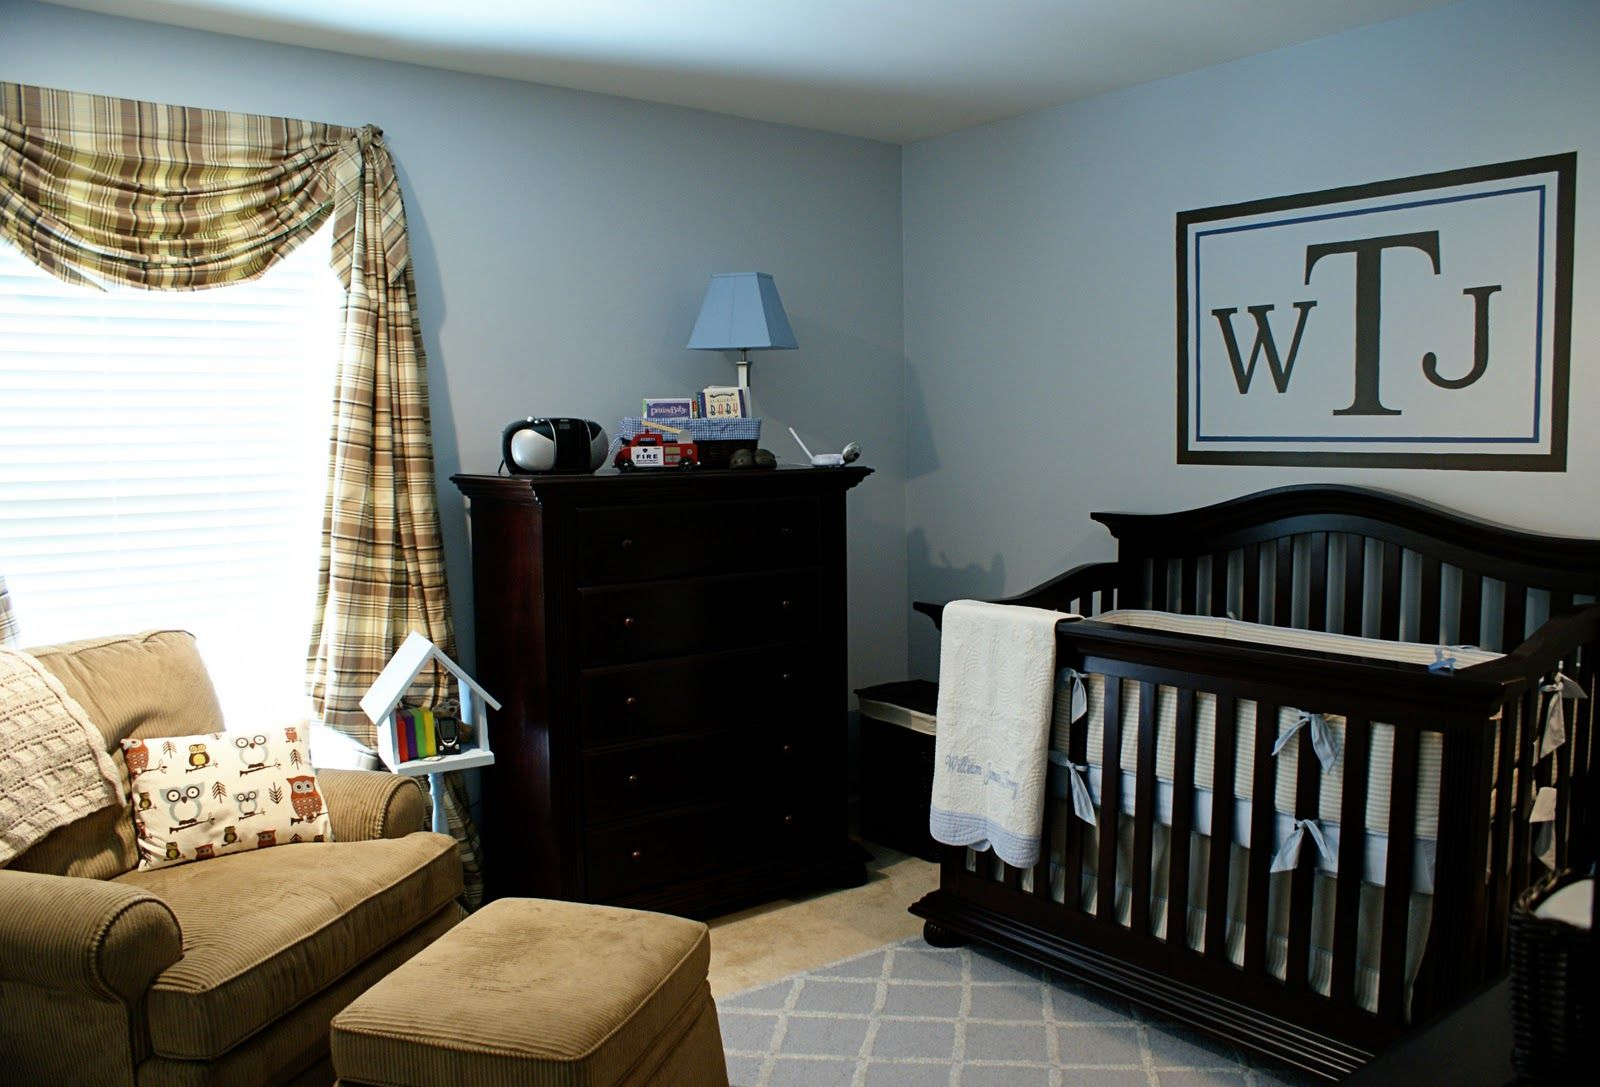 Room nursery on pinterest babies nursery nurseries and for Bedroom ideas for baby boys